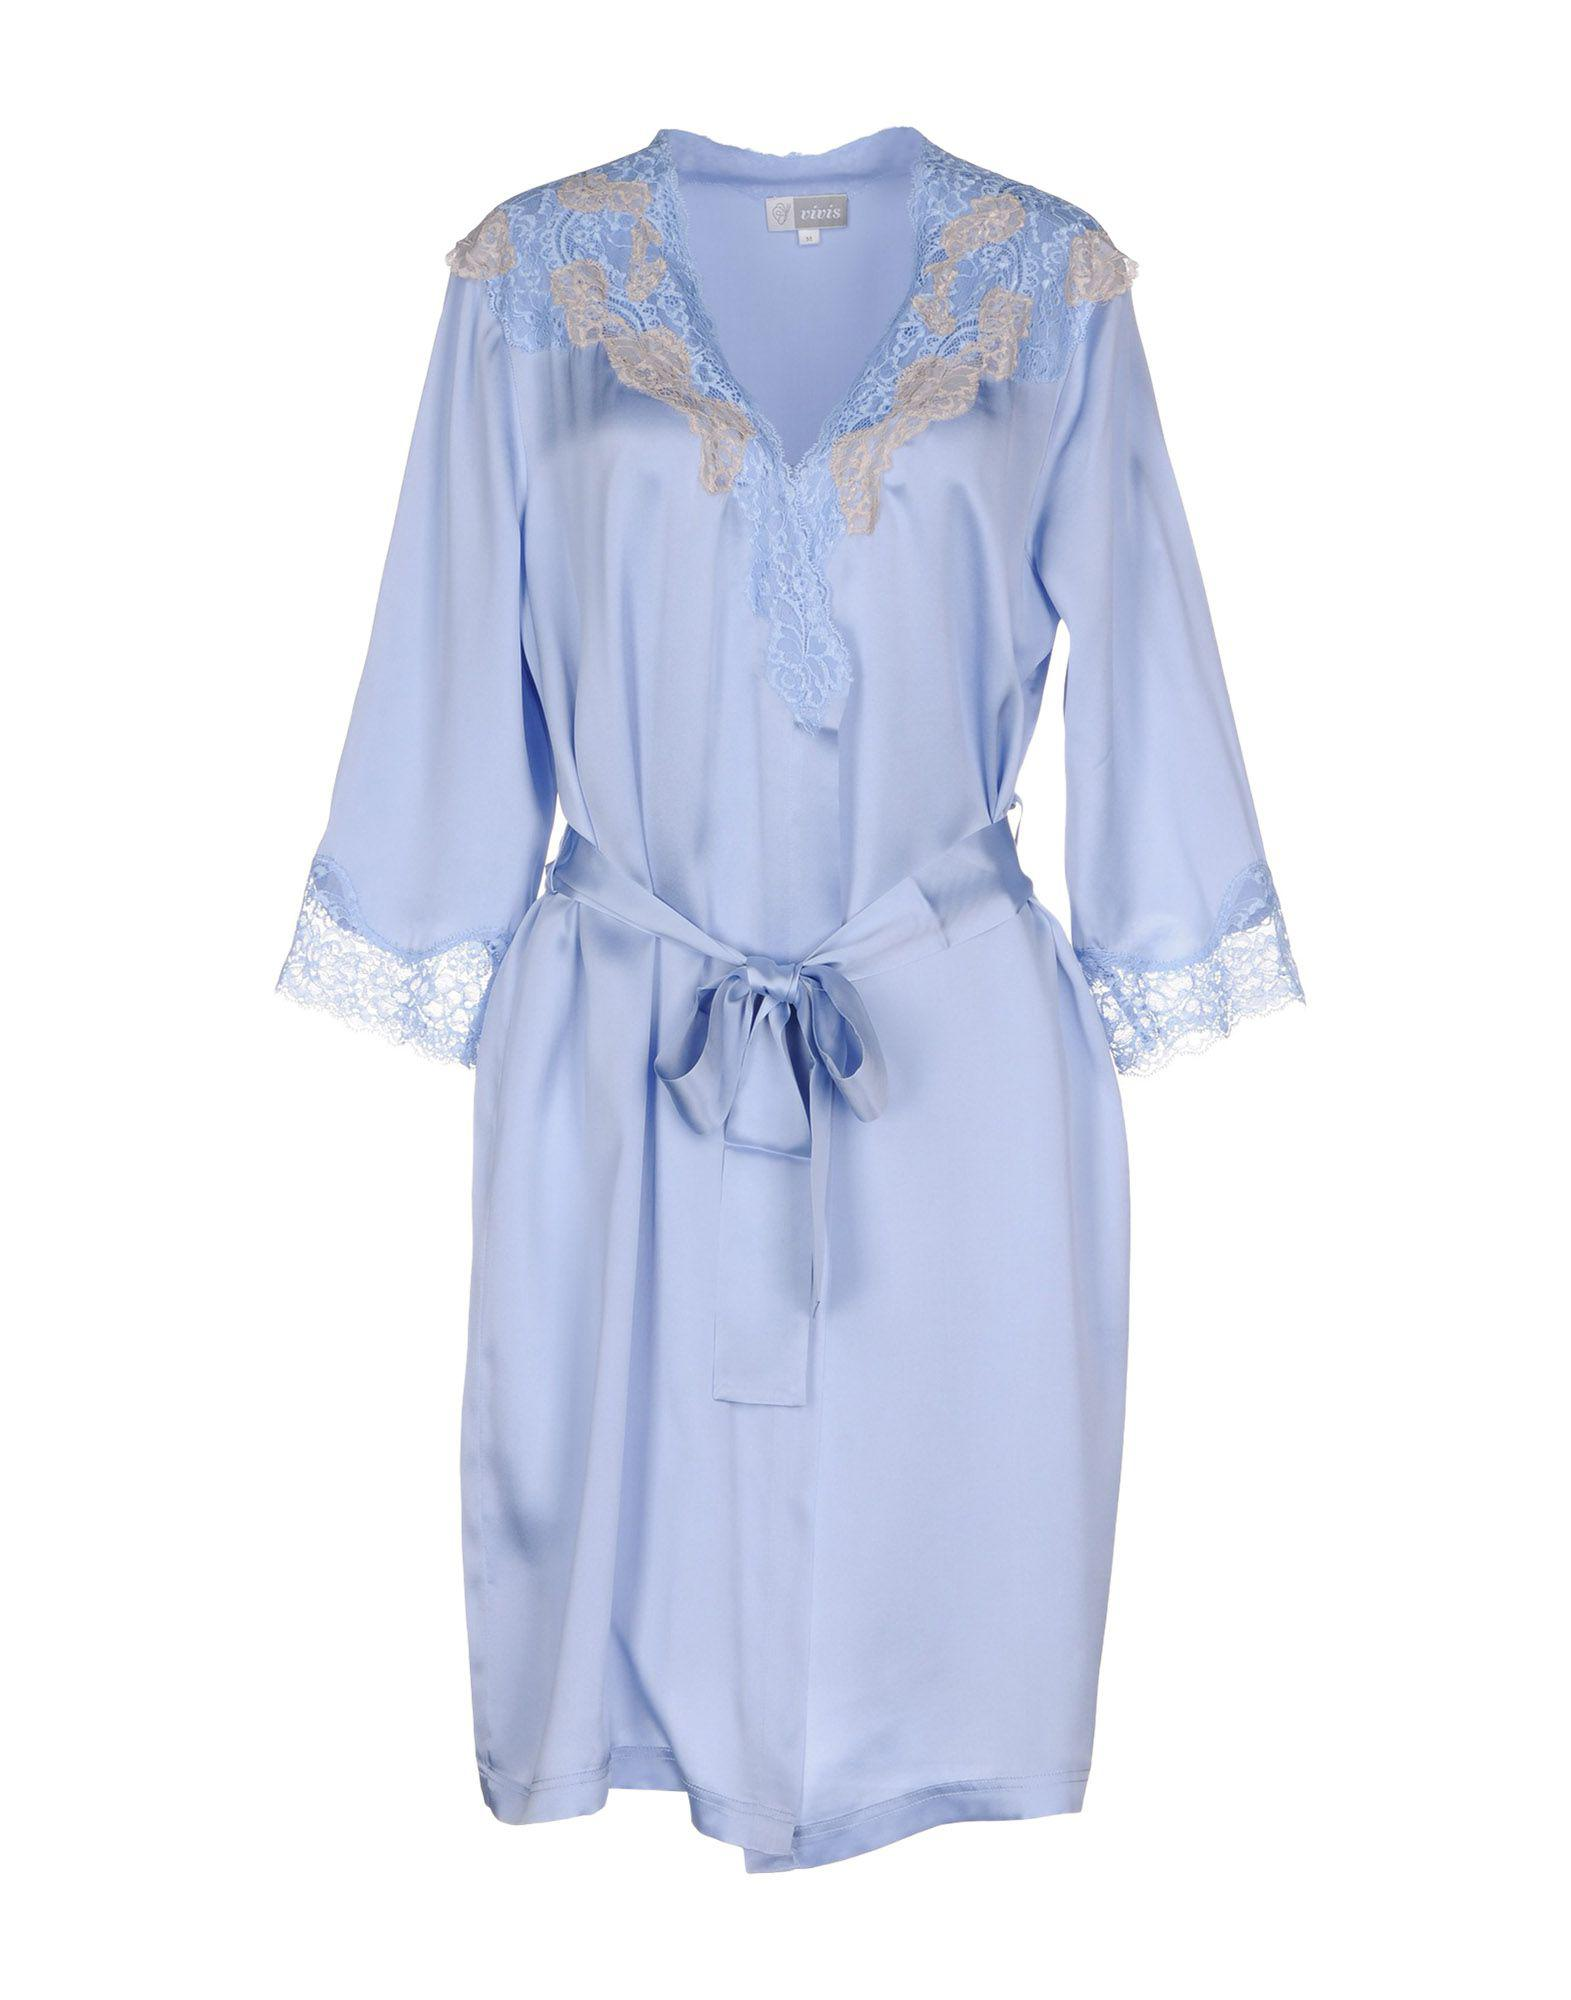 c30fe3bd98 Lyst - Vivis Dressing Gown in Blue